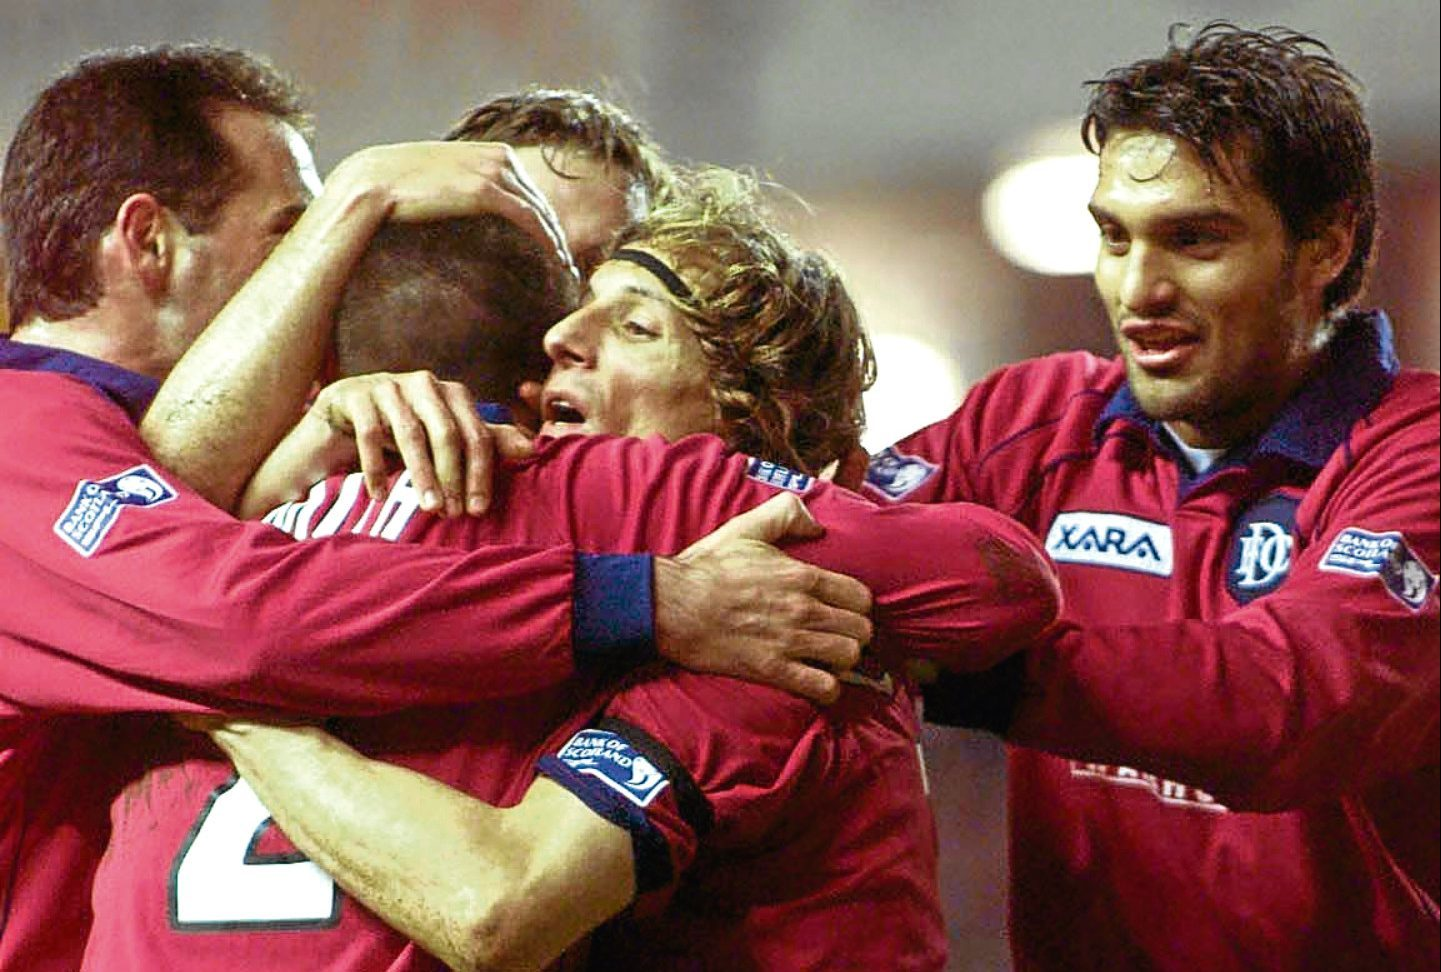 Claudio Caniggia is mobbed by his team-mates after scoring the opener for Dundee when they beat Rangers 2-0 at Ibrox in March 2001 — the last time the Dee tasted success at the Govan stadium.